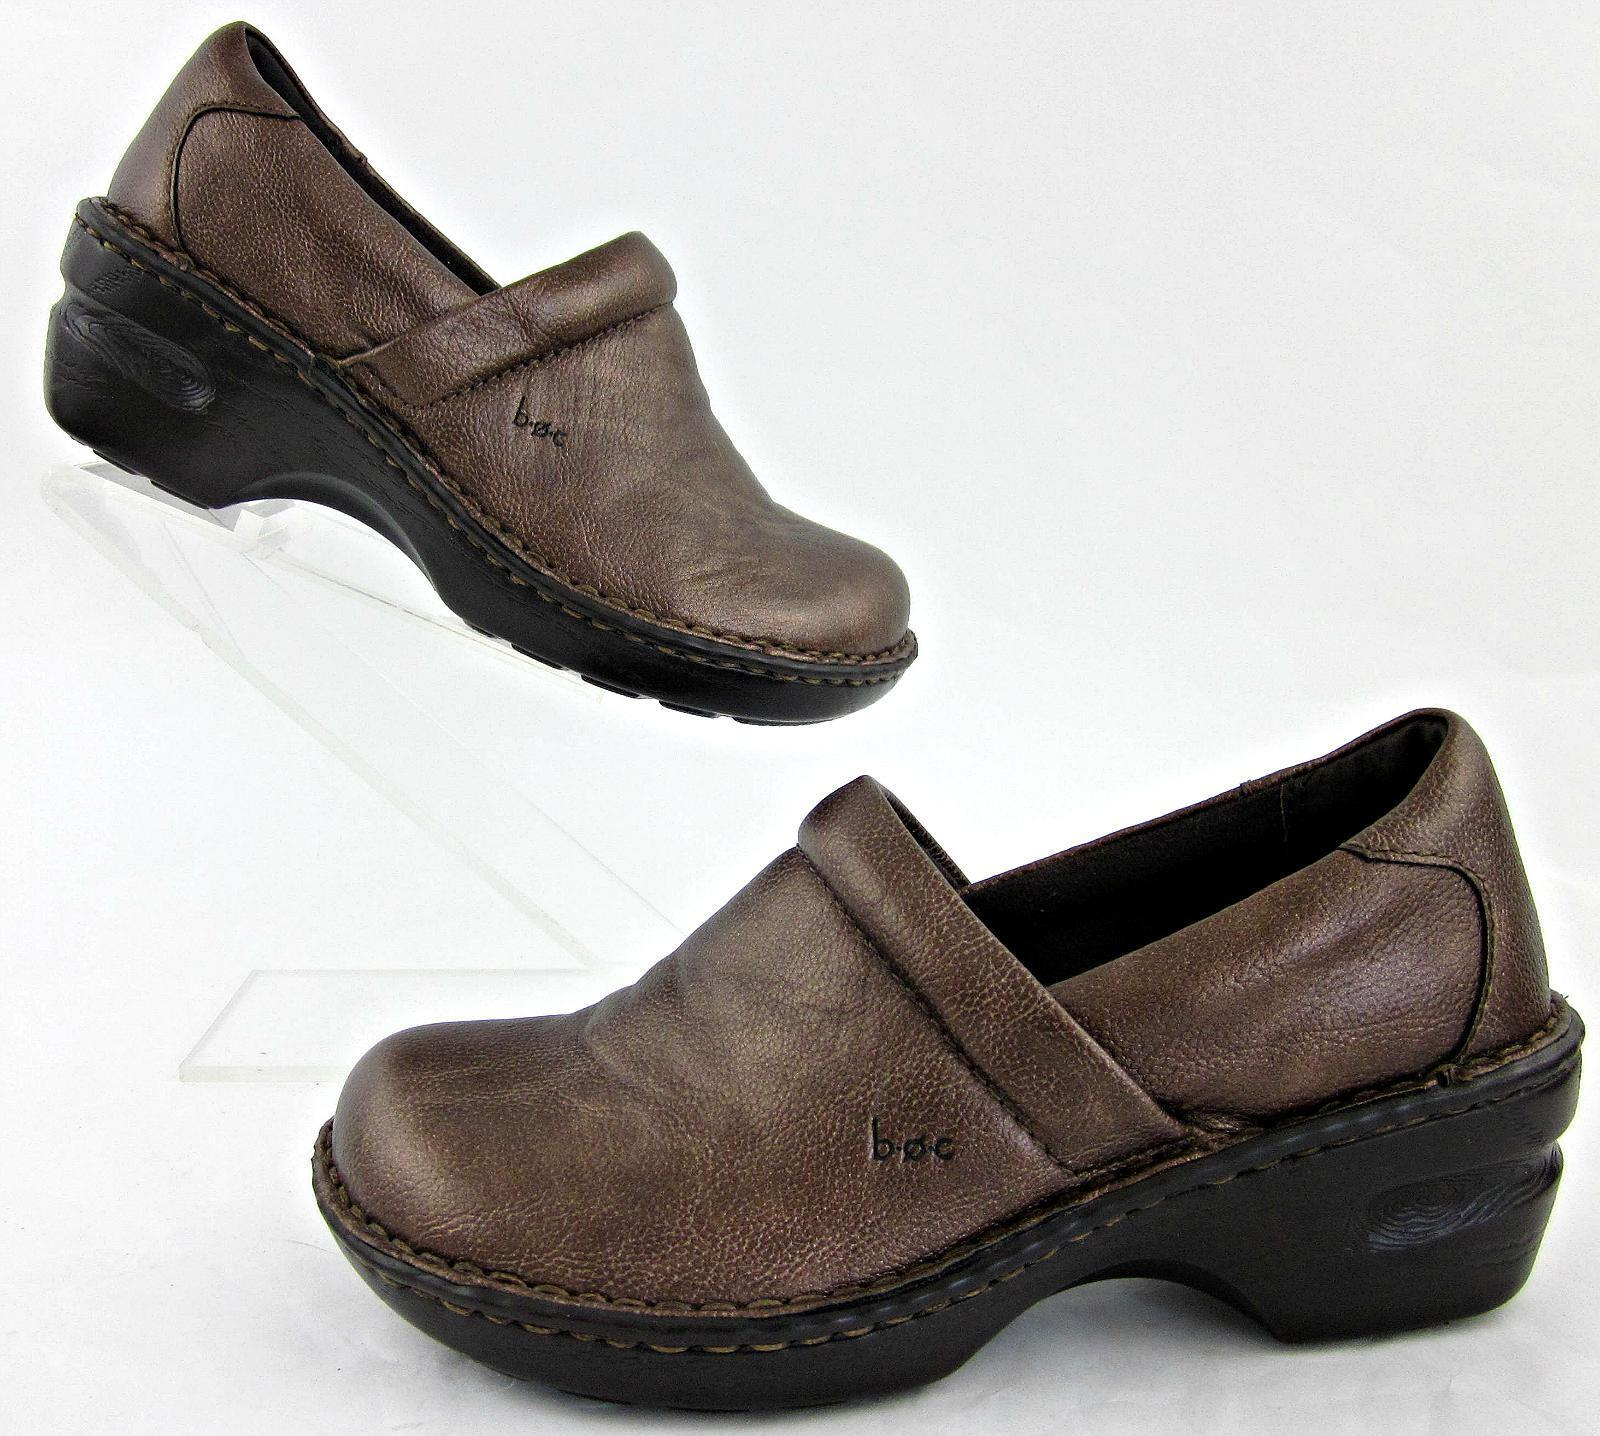 BOC By Born Womens Slip On Clogs Copper Sz 6.5